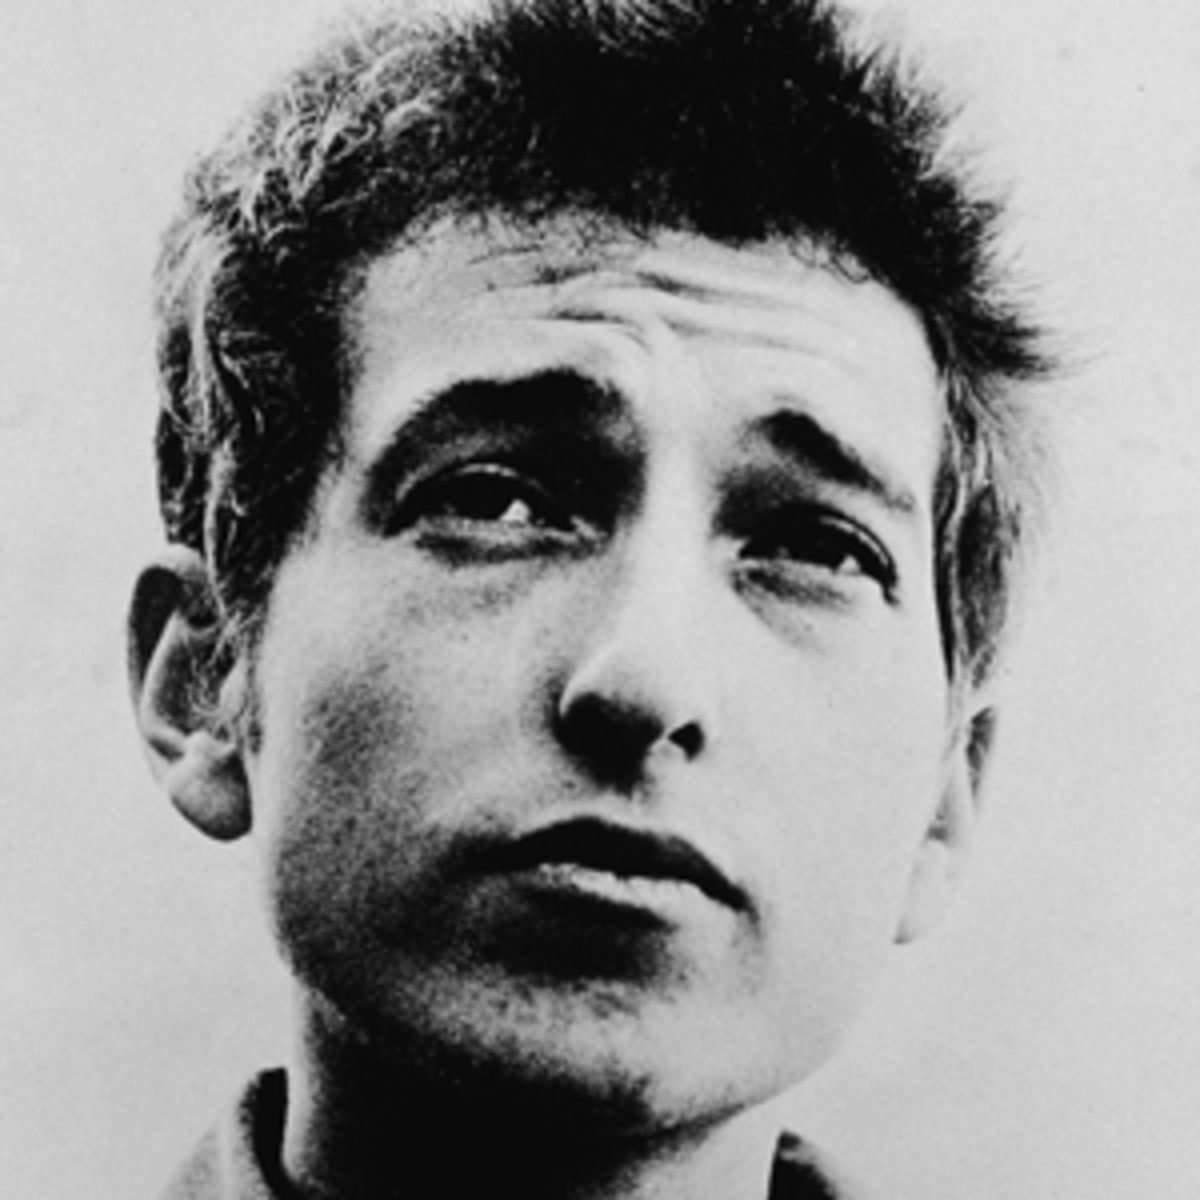 Bob Dylan's Anti-War Songs